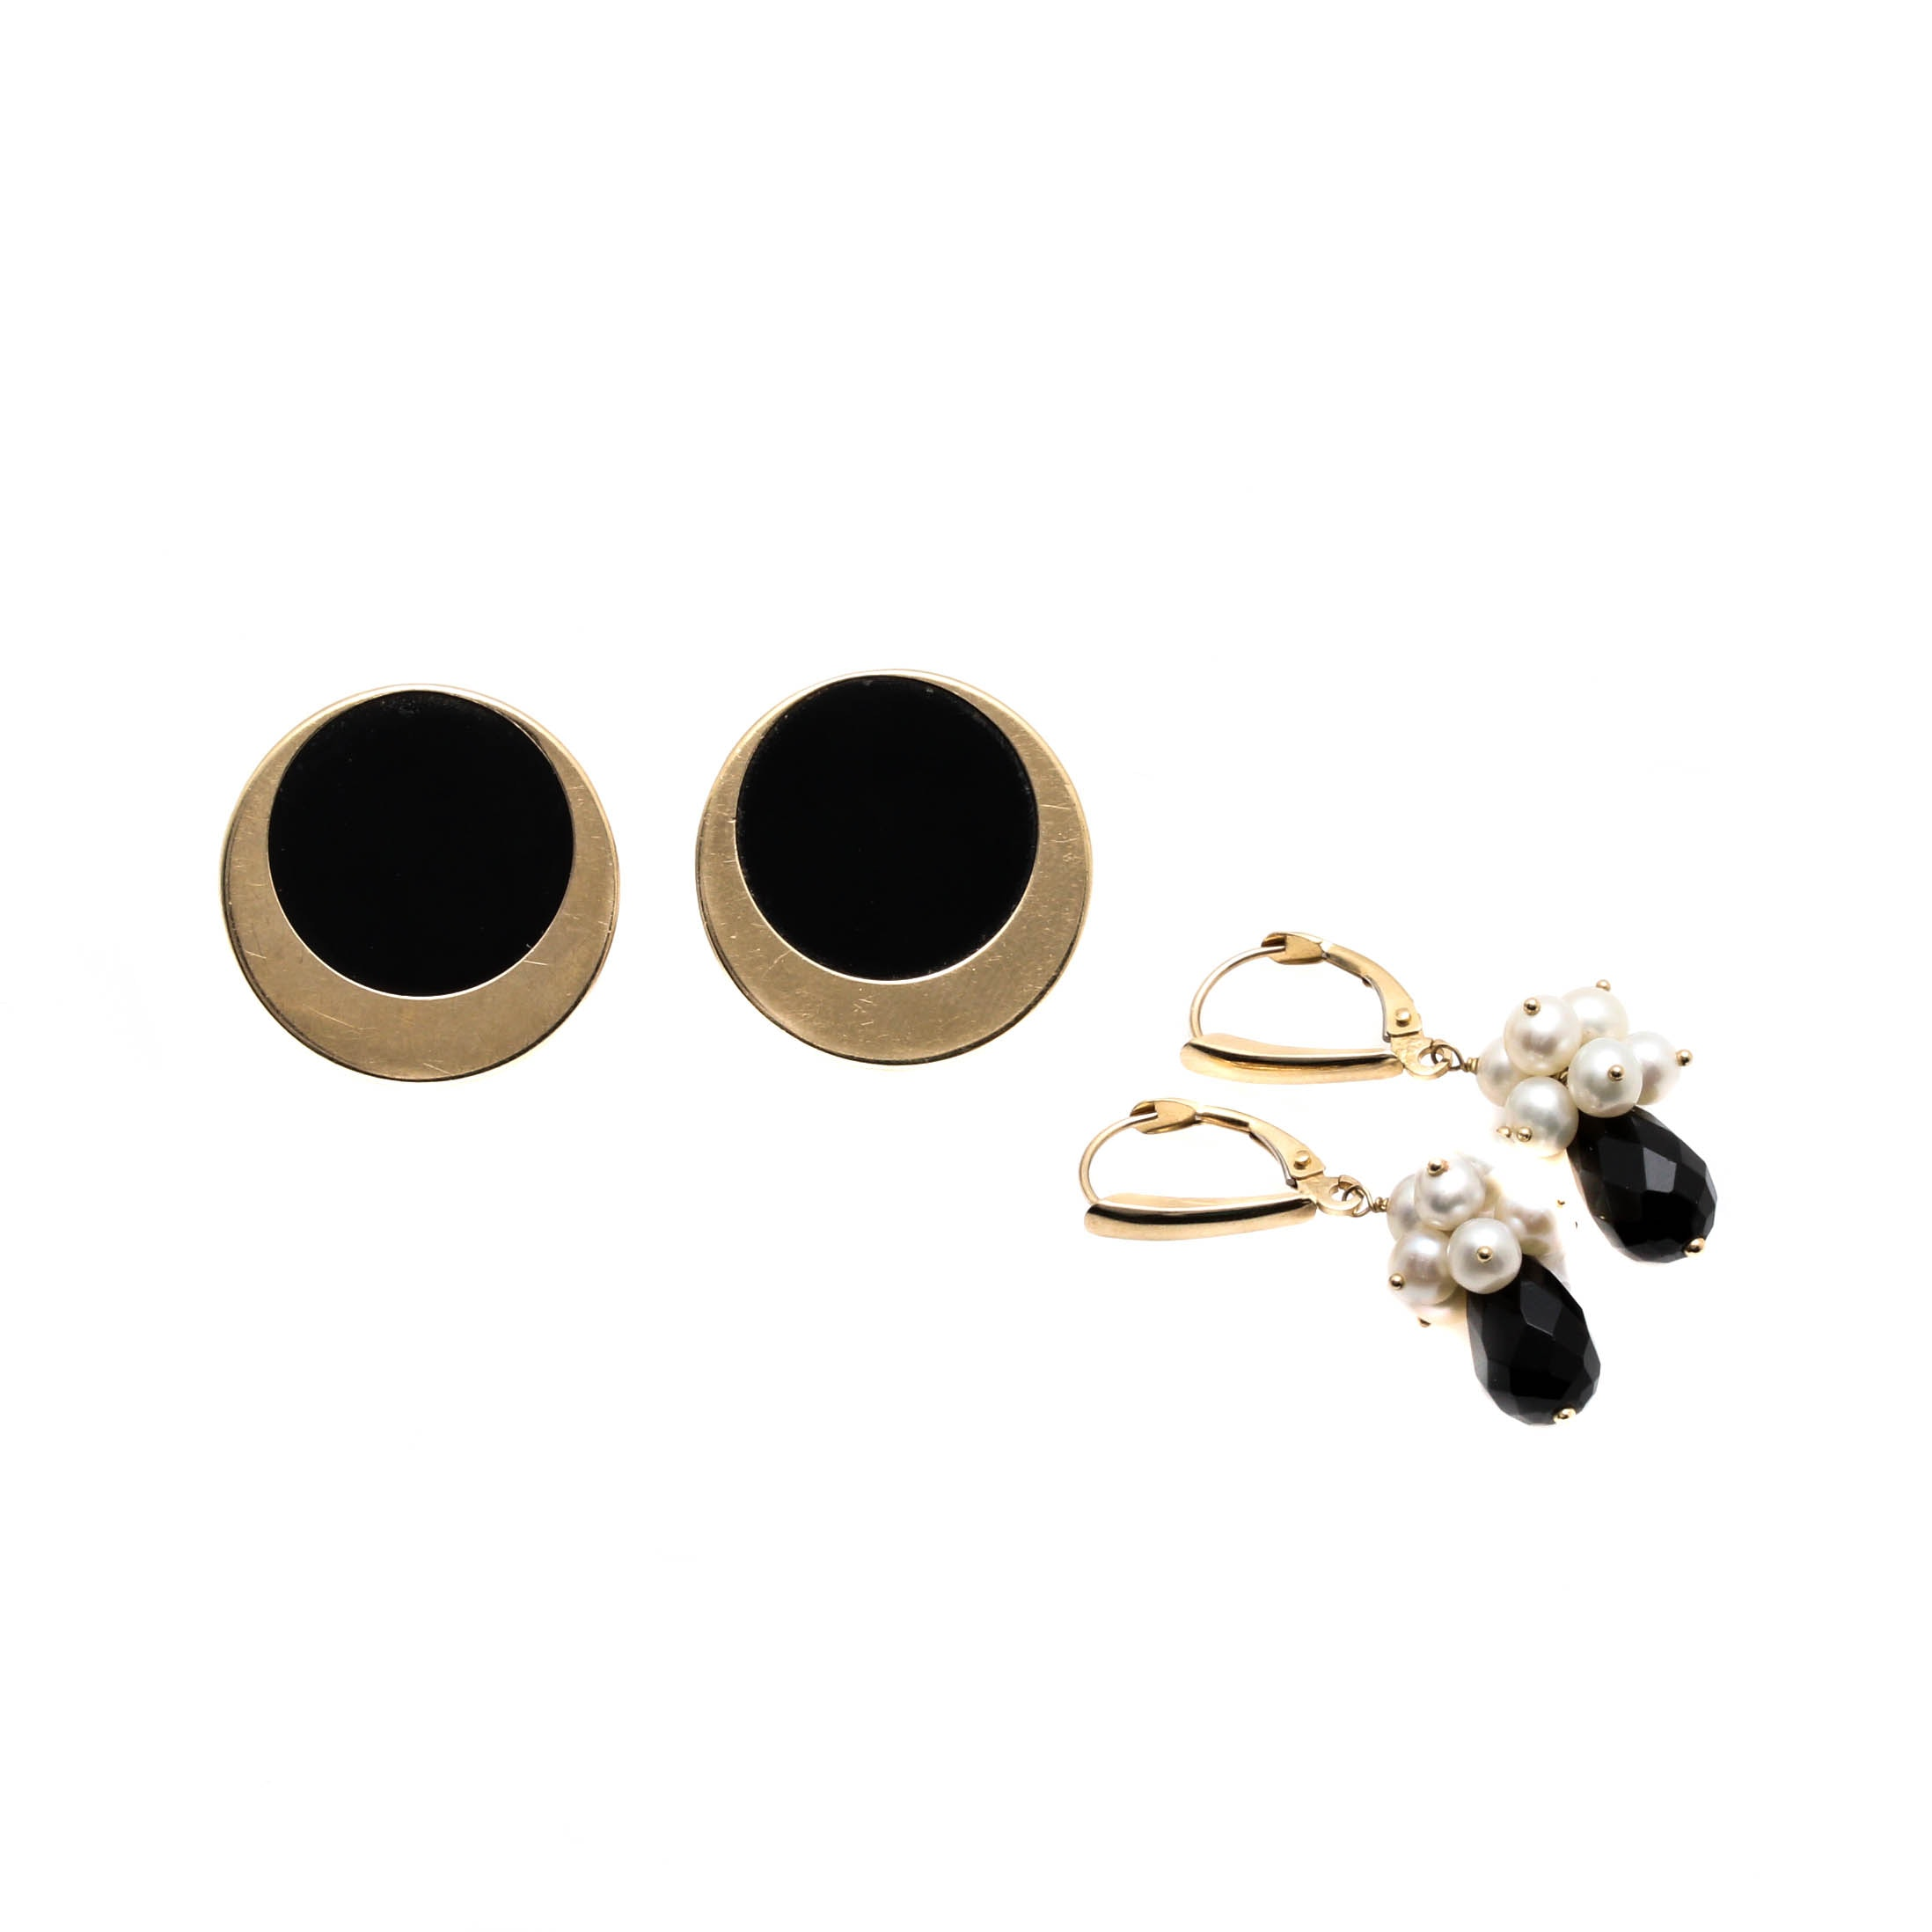 14K Yellow Gold Earrings Including Black Onyx and Cultured Pearls